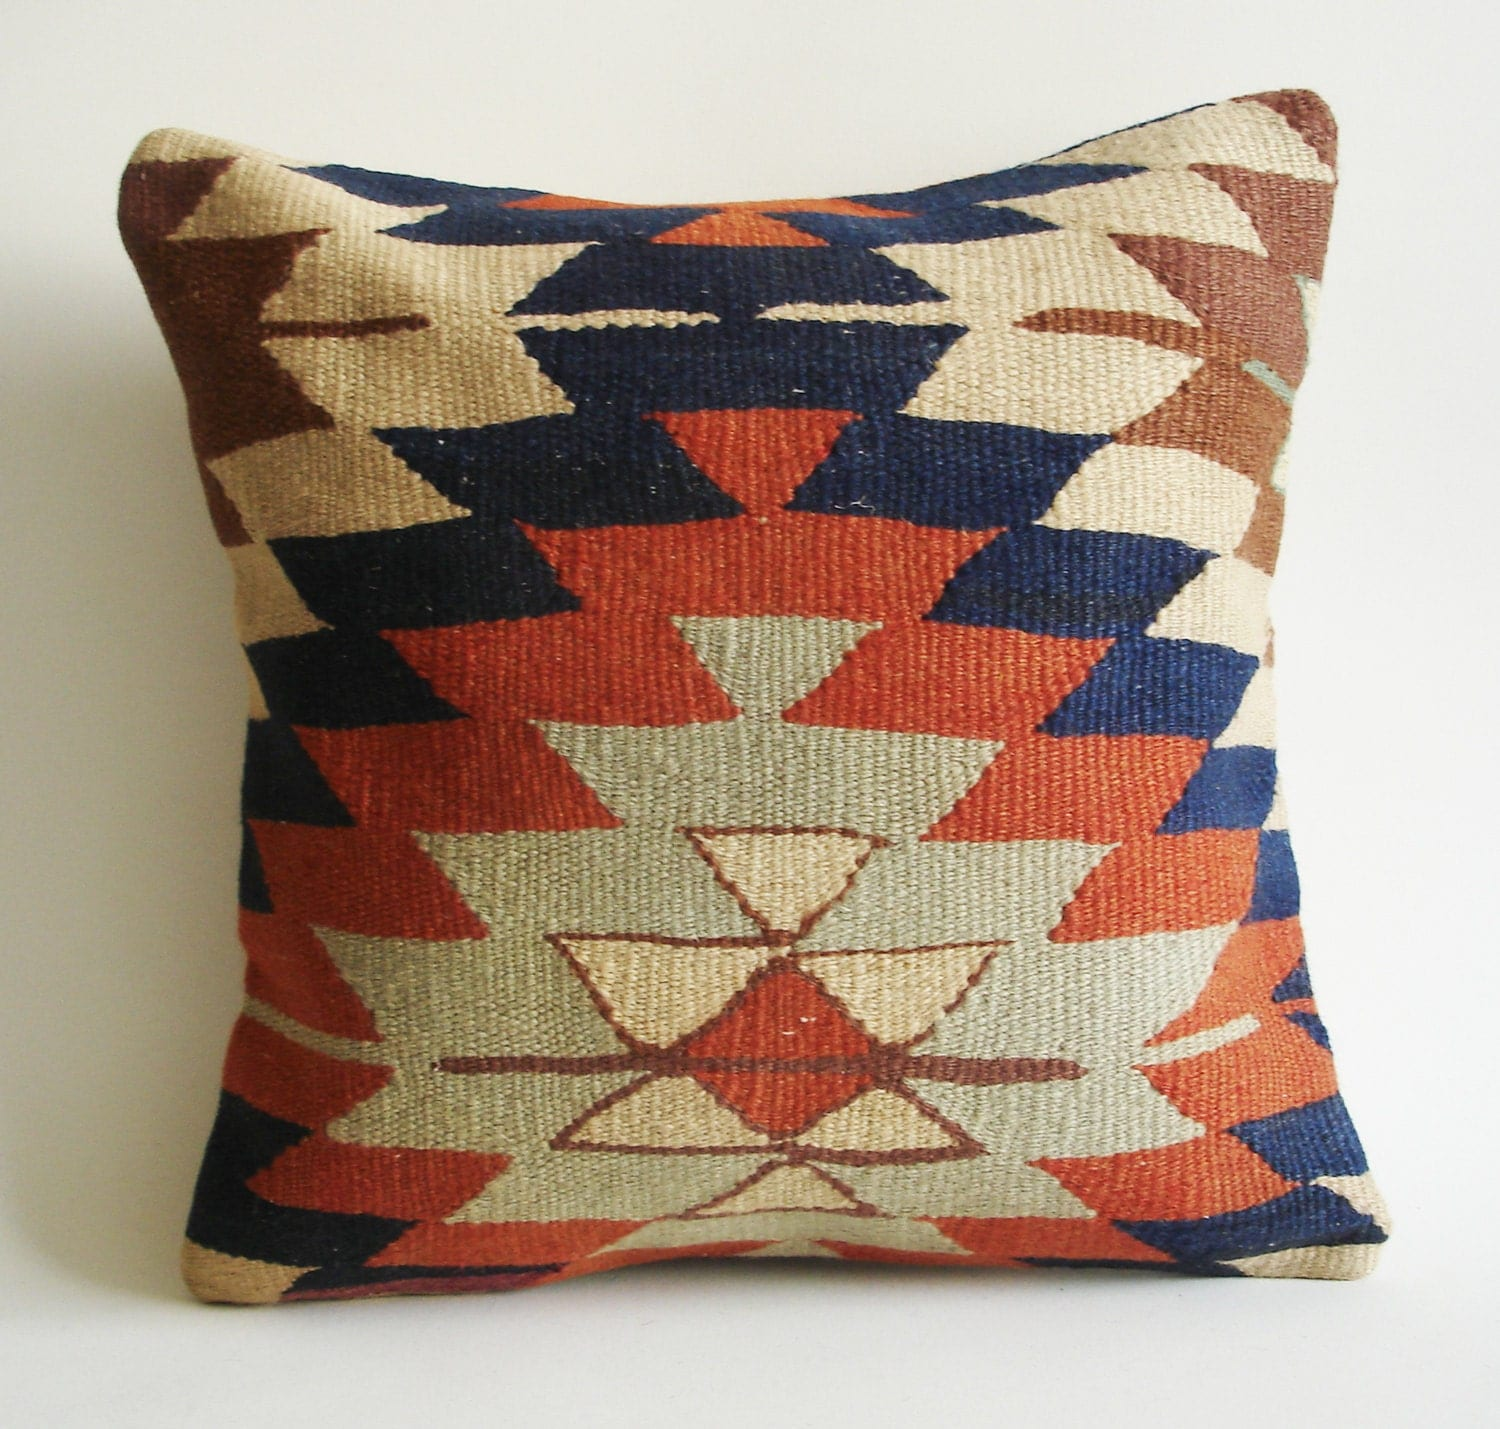 Turkish Kilim Throw Pillows : Sukan / Handwoven Vintage Turkish Kilim Pillow Cover by sukan